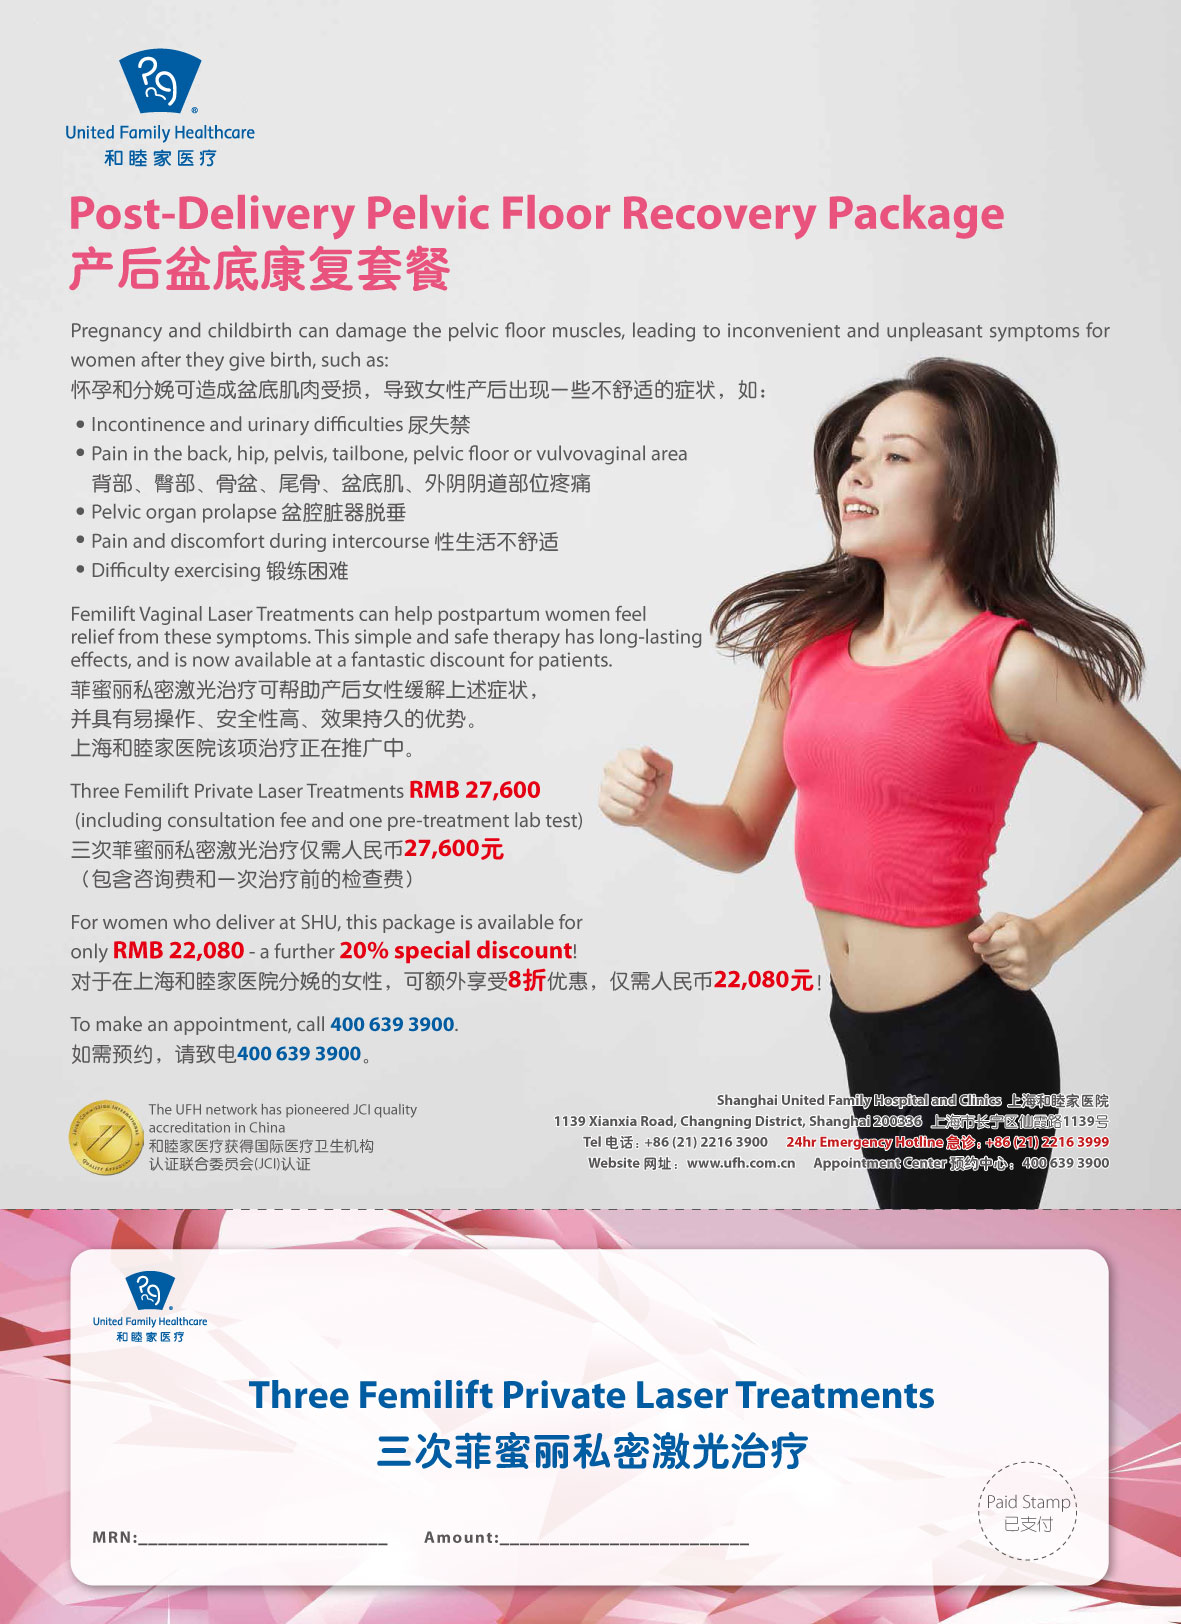 final-pelvic-floor-recovery-package-flyer_20170405-1